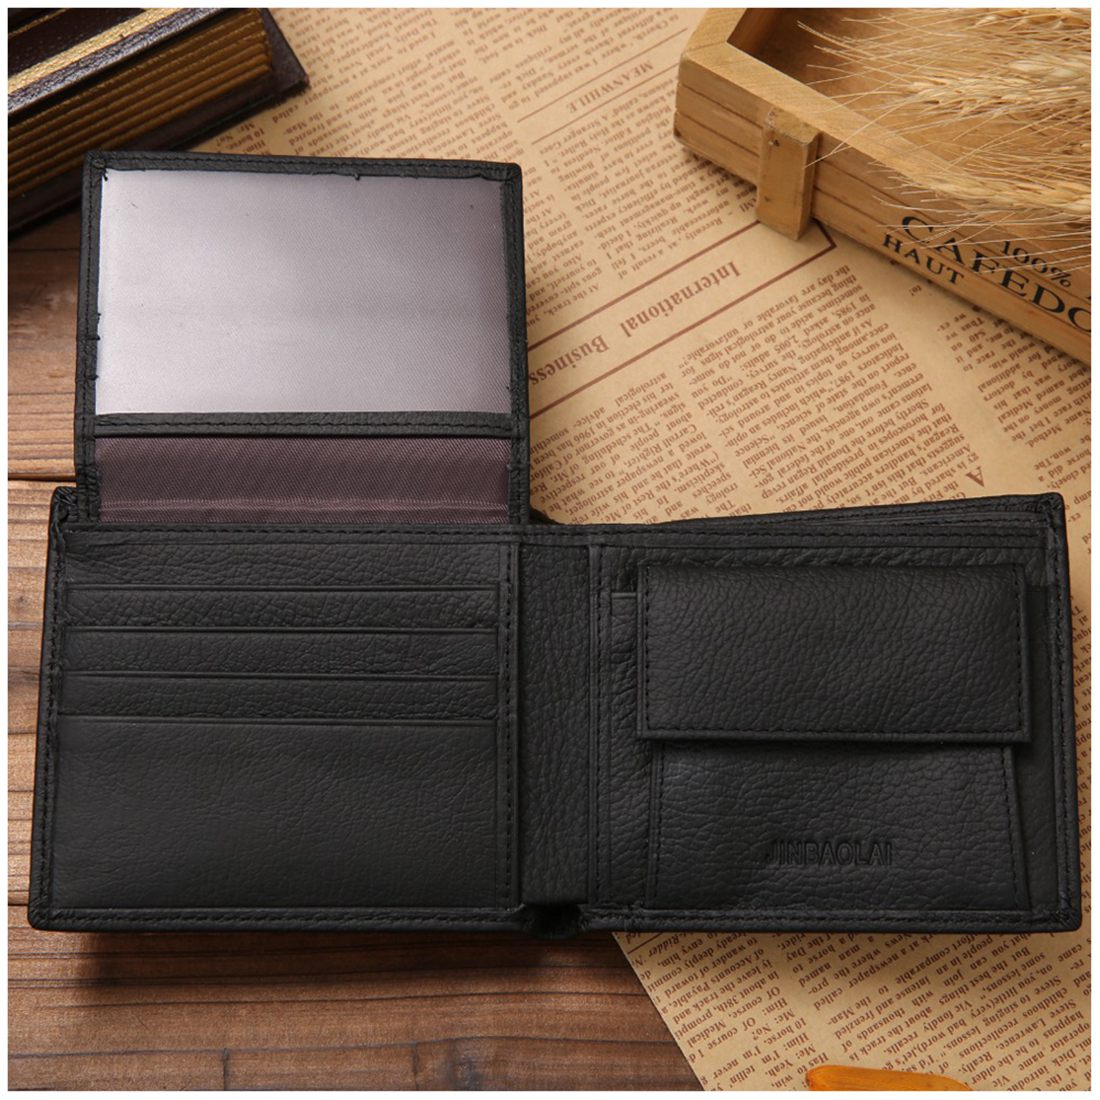 Hot Fashion JINBAOLAI Small Short Leather Mens Wallet Male Wallet Bag Wallet Vallet Card Money Persian world Wallet(Black) ...